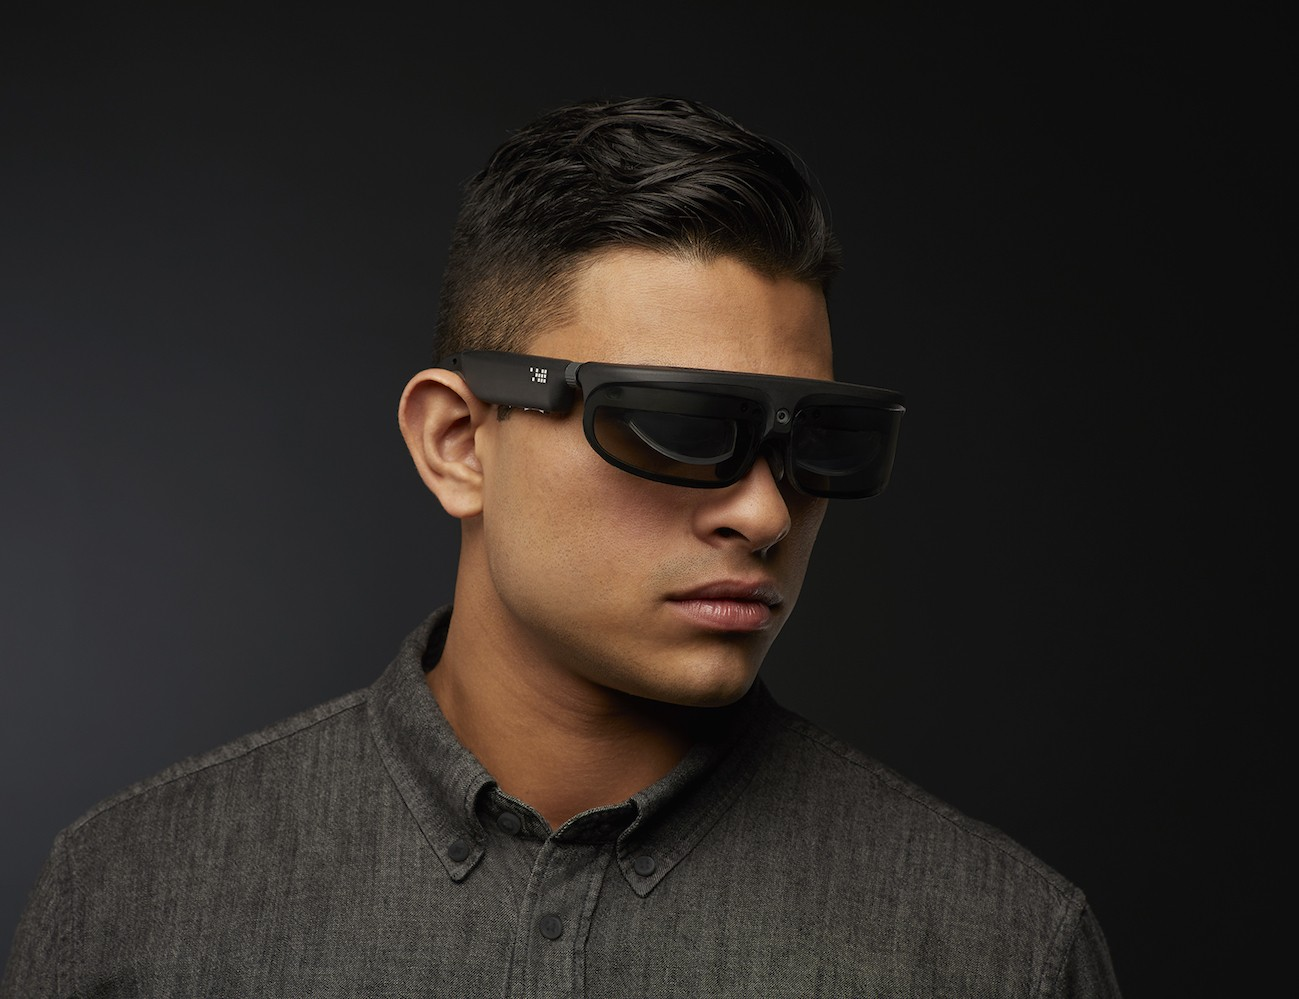 R-8 Mixed-Reality Smart Glasses